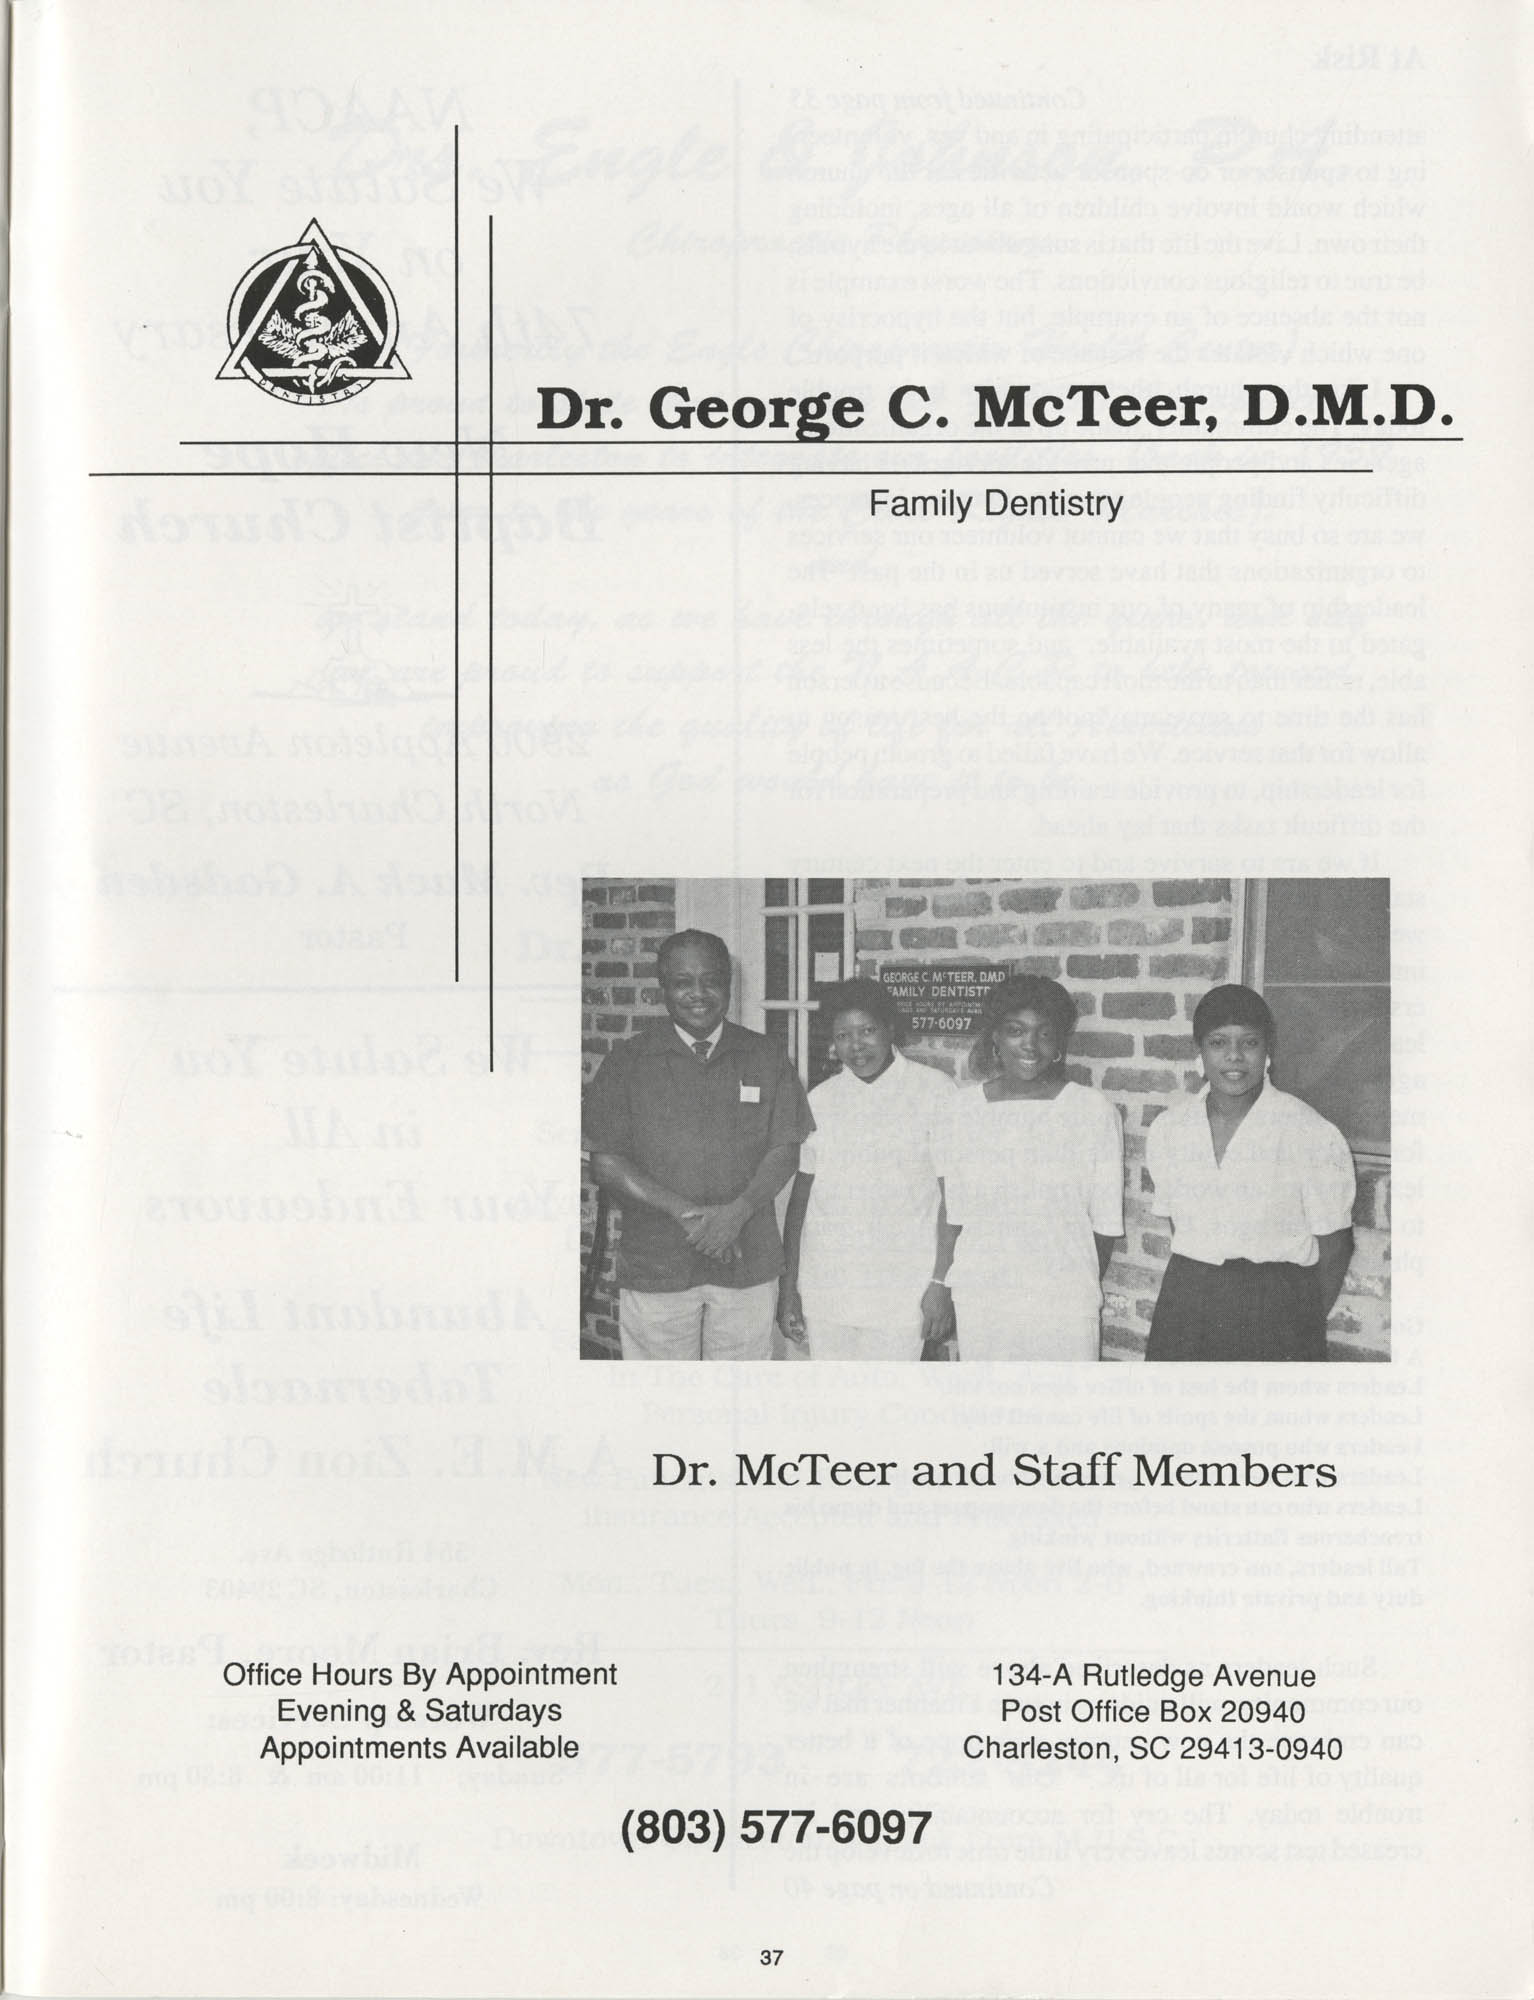 1990 NAACP Freedom Fund Magazine, Charleston Branch of the NAACP, 74th Anniversary, Page 37